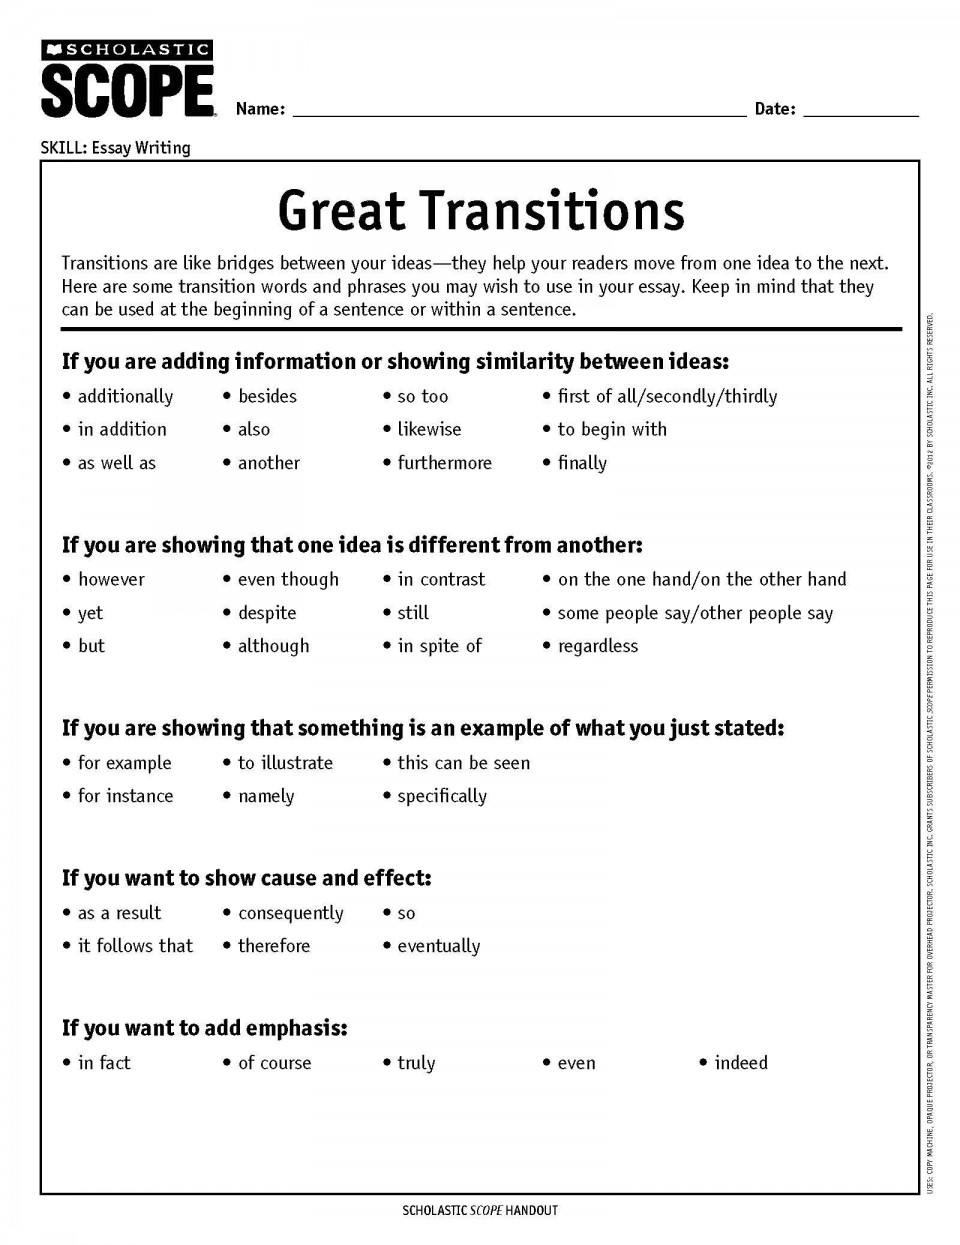 019 Essay Example Transitions How To Choose The Perfect Transition Word Or Phrase Writing Words For An List Of Transitional Essays Pdf Archaicawful Conclusion In Spanish 960